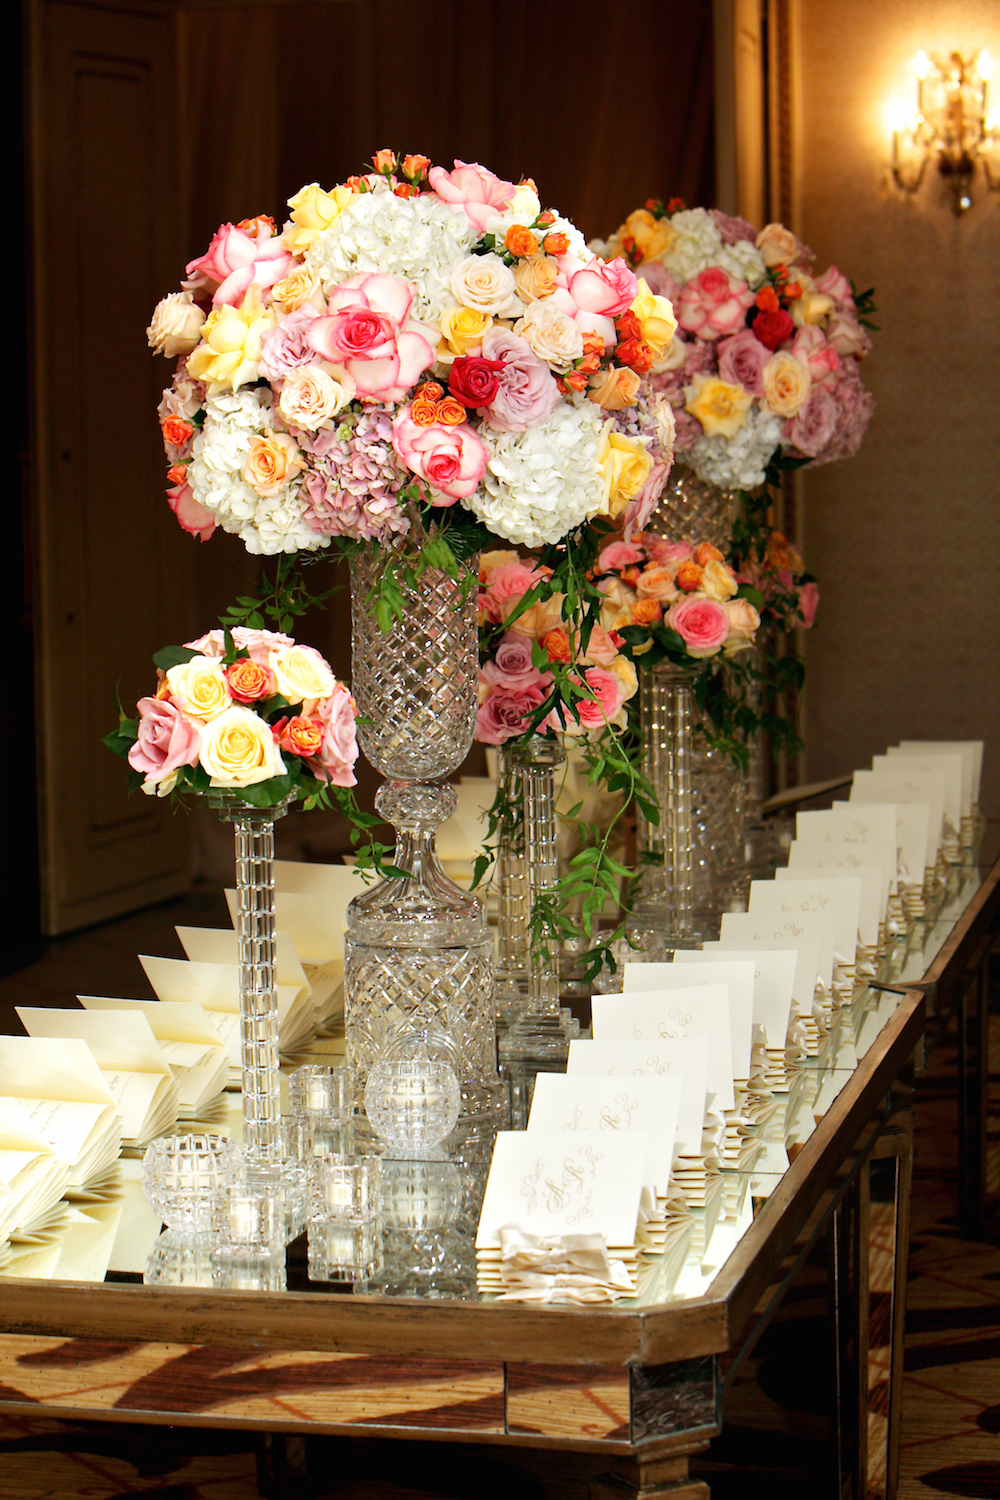 Pink rose flowers in flower arrangement on escort card table